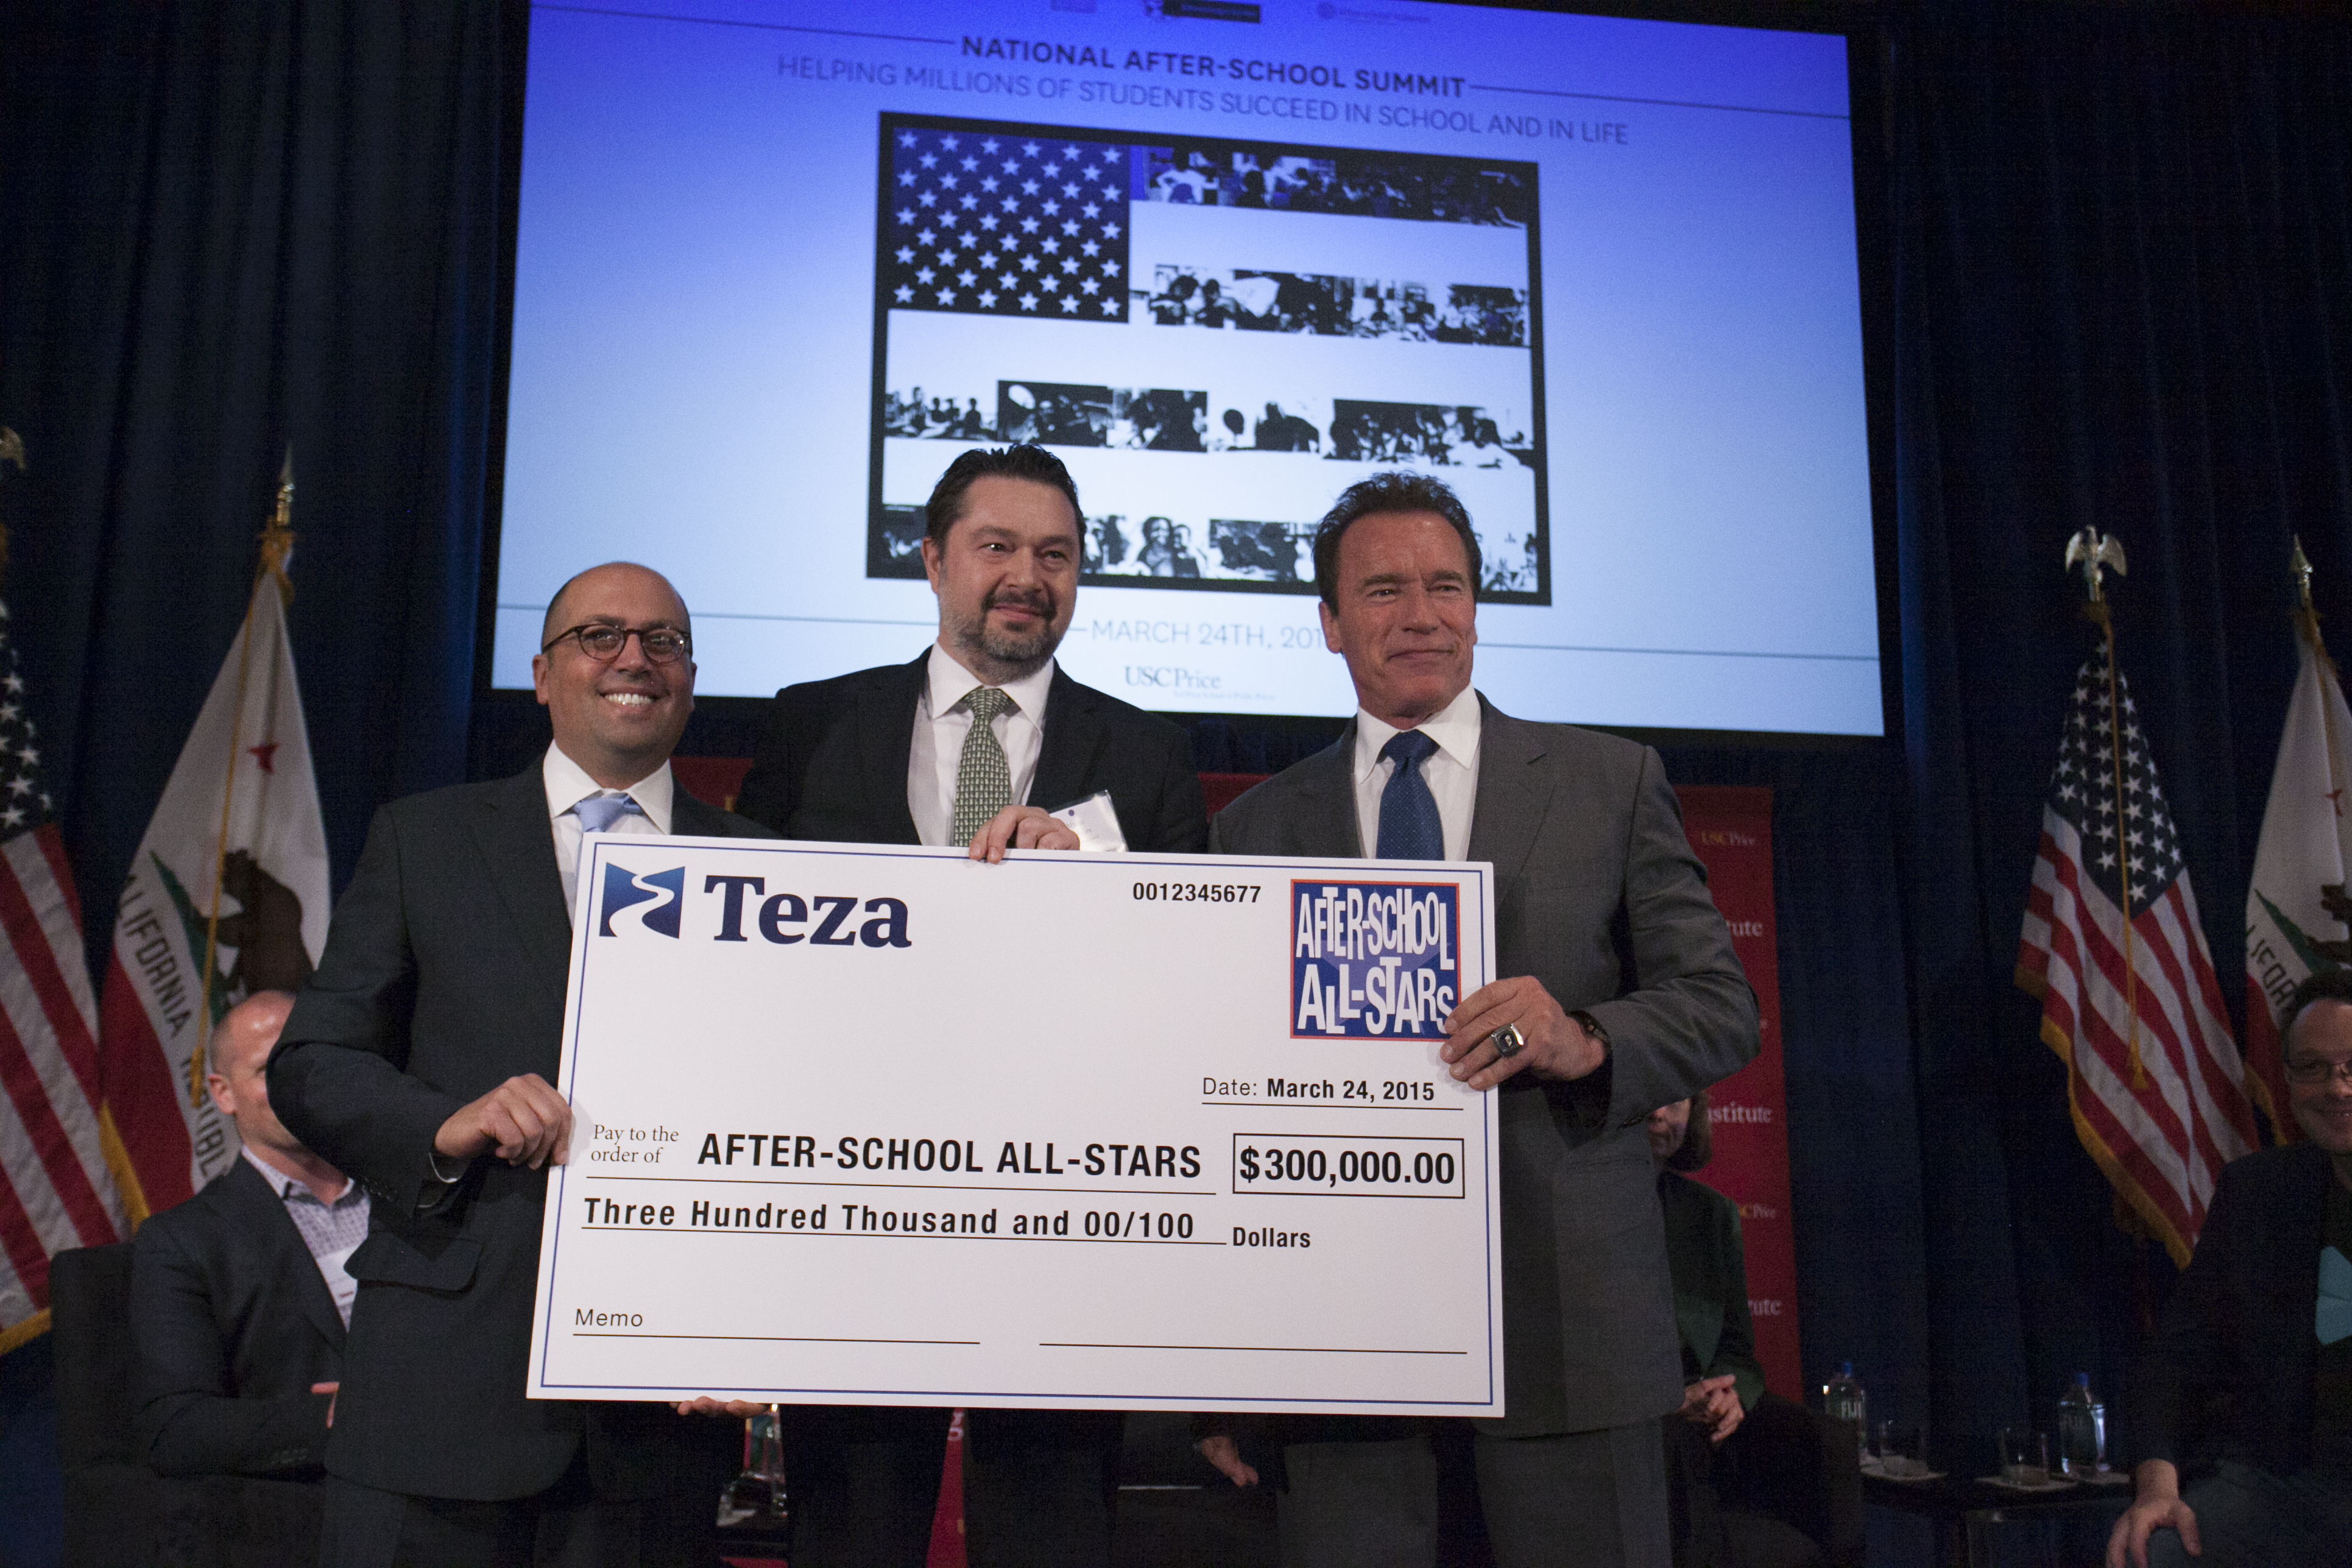 Misha Malyshev presents check to After-School All-Stars. From left: Ben Paul for ASAS, Misha Malyshev for Teza Technologies and Arnold Schwarzenegger. (Photo: Business Wire)